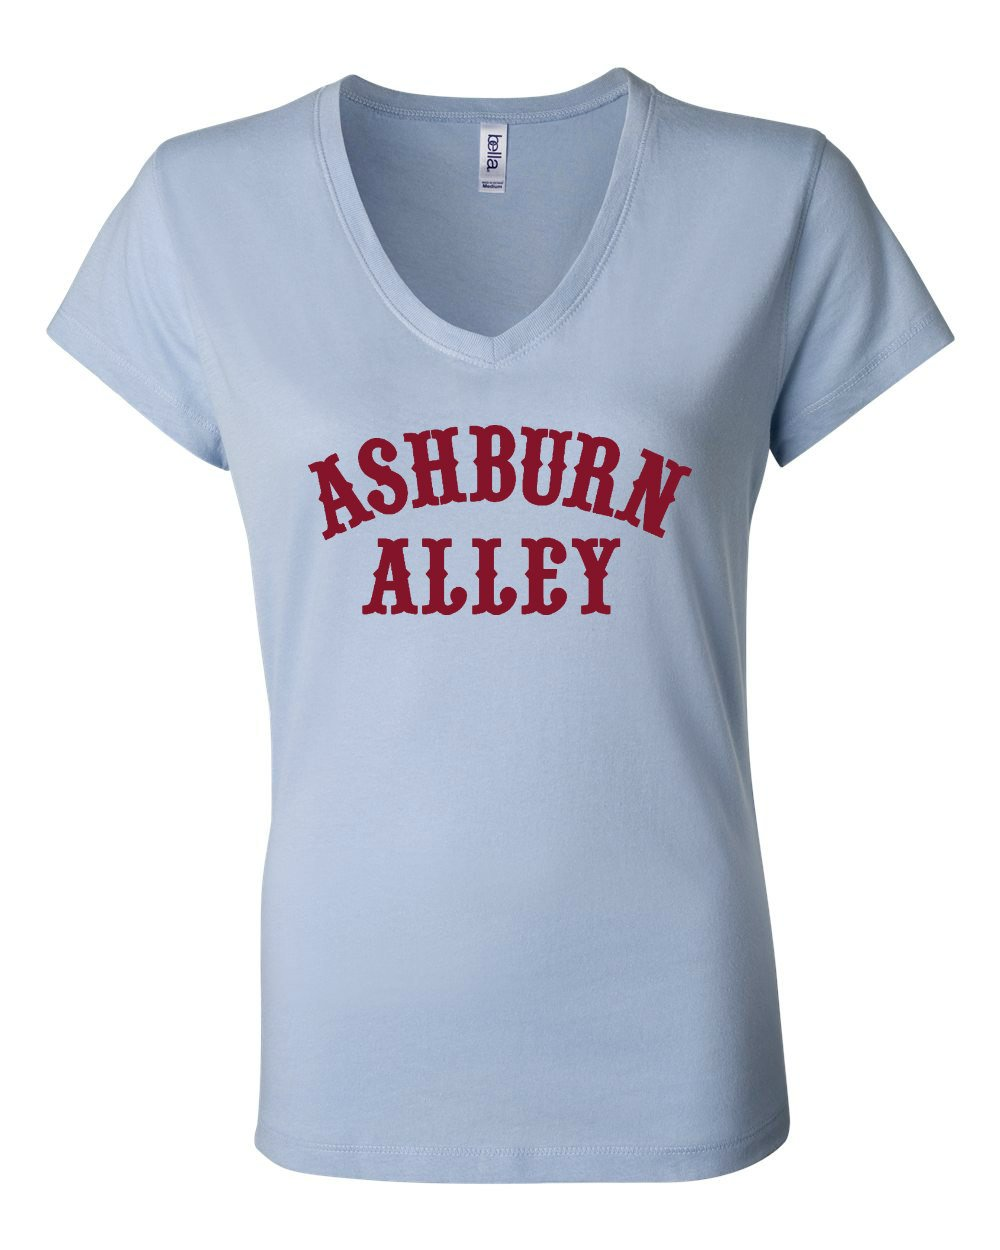 Ashburn Alley LADIES Junior Fit V-Neck